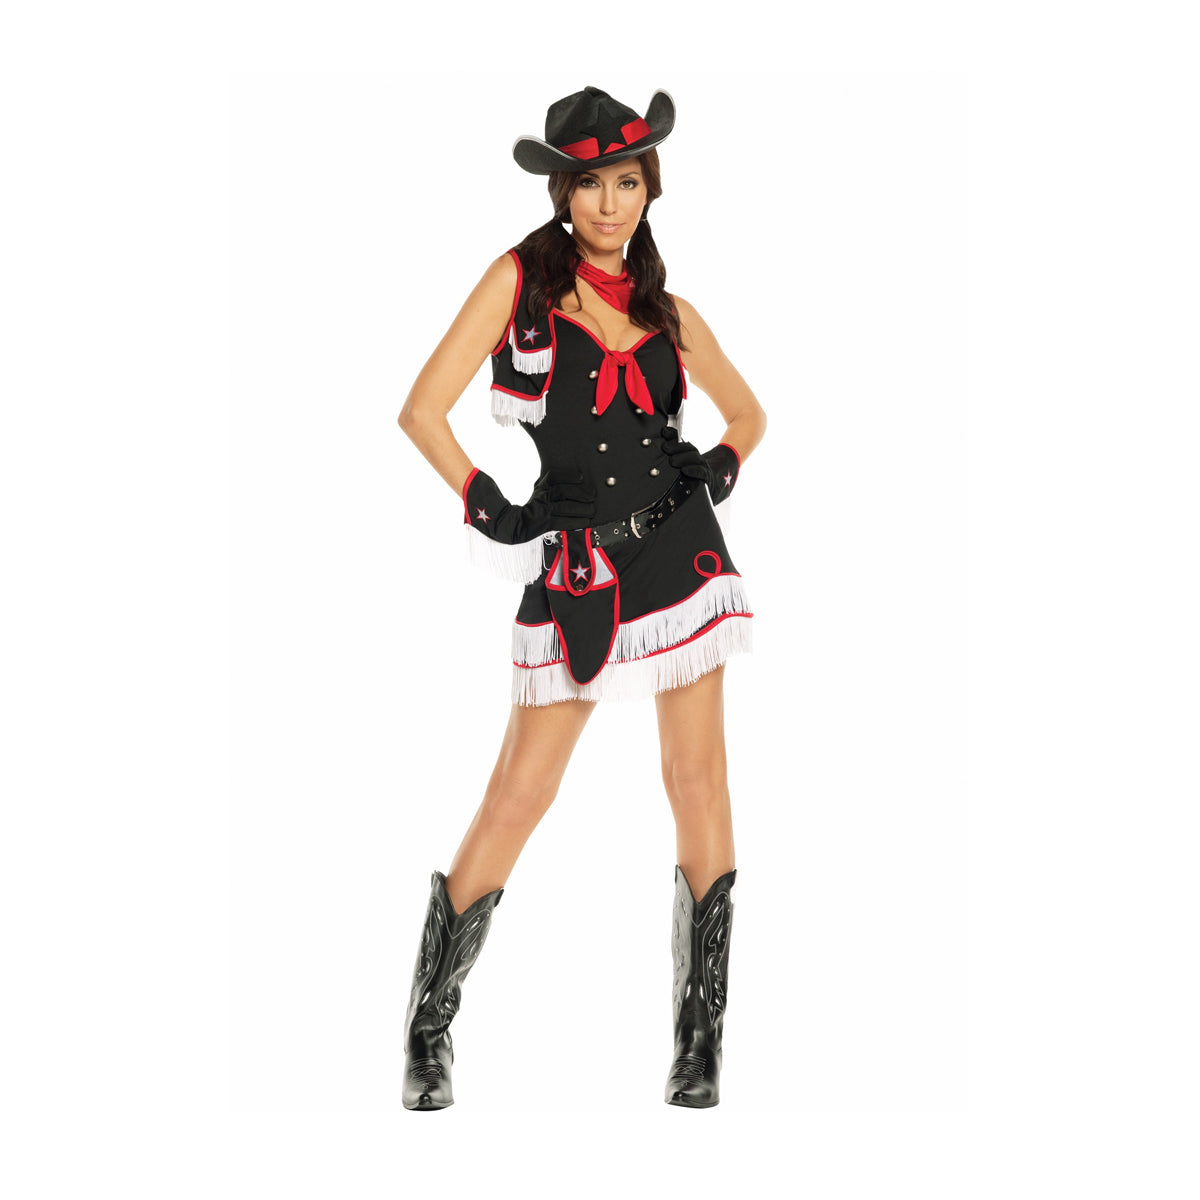 Bodysocks - Women's Western Costume